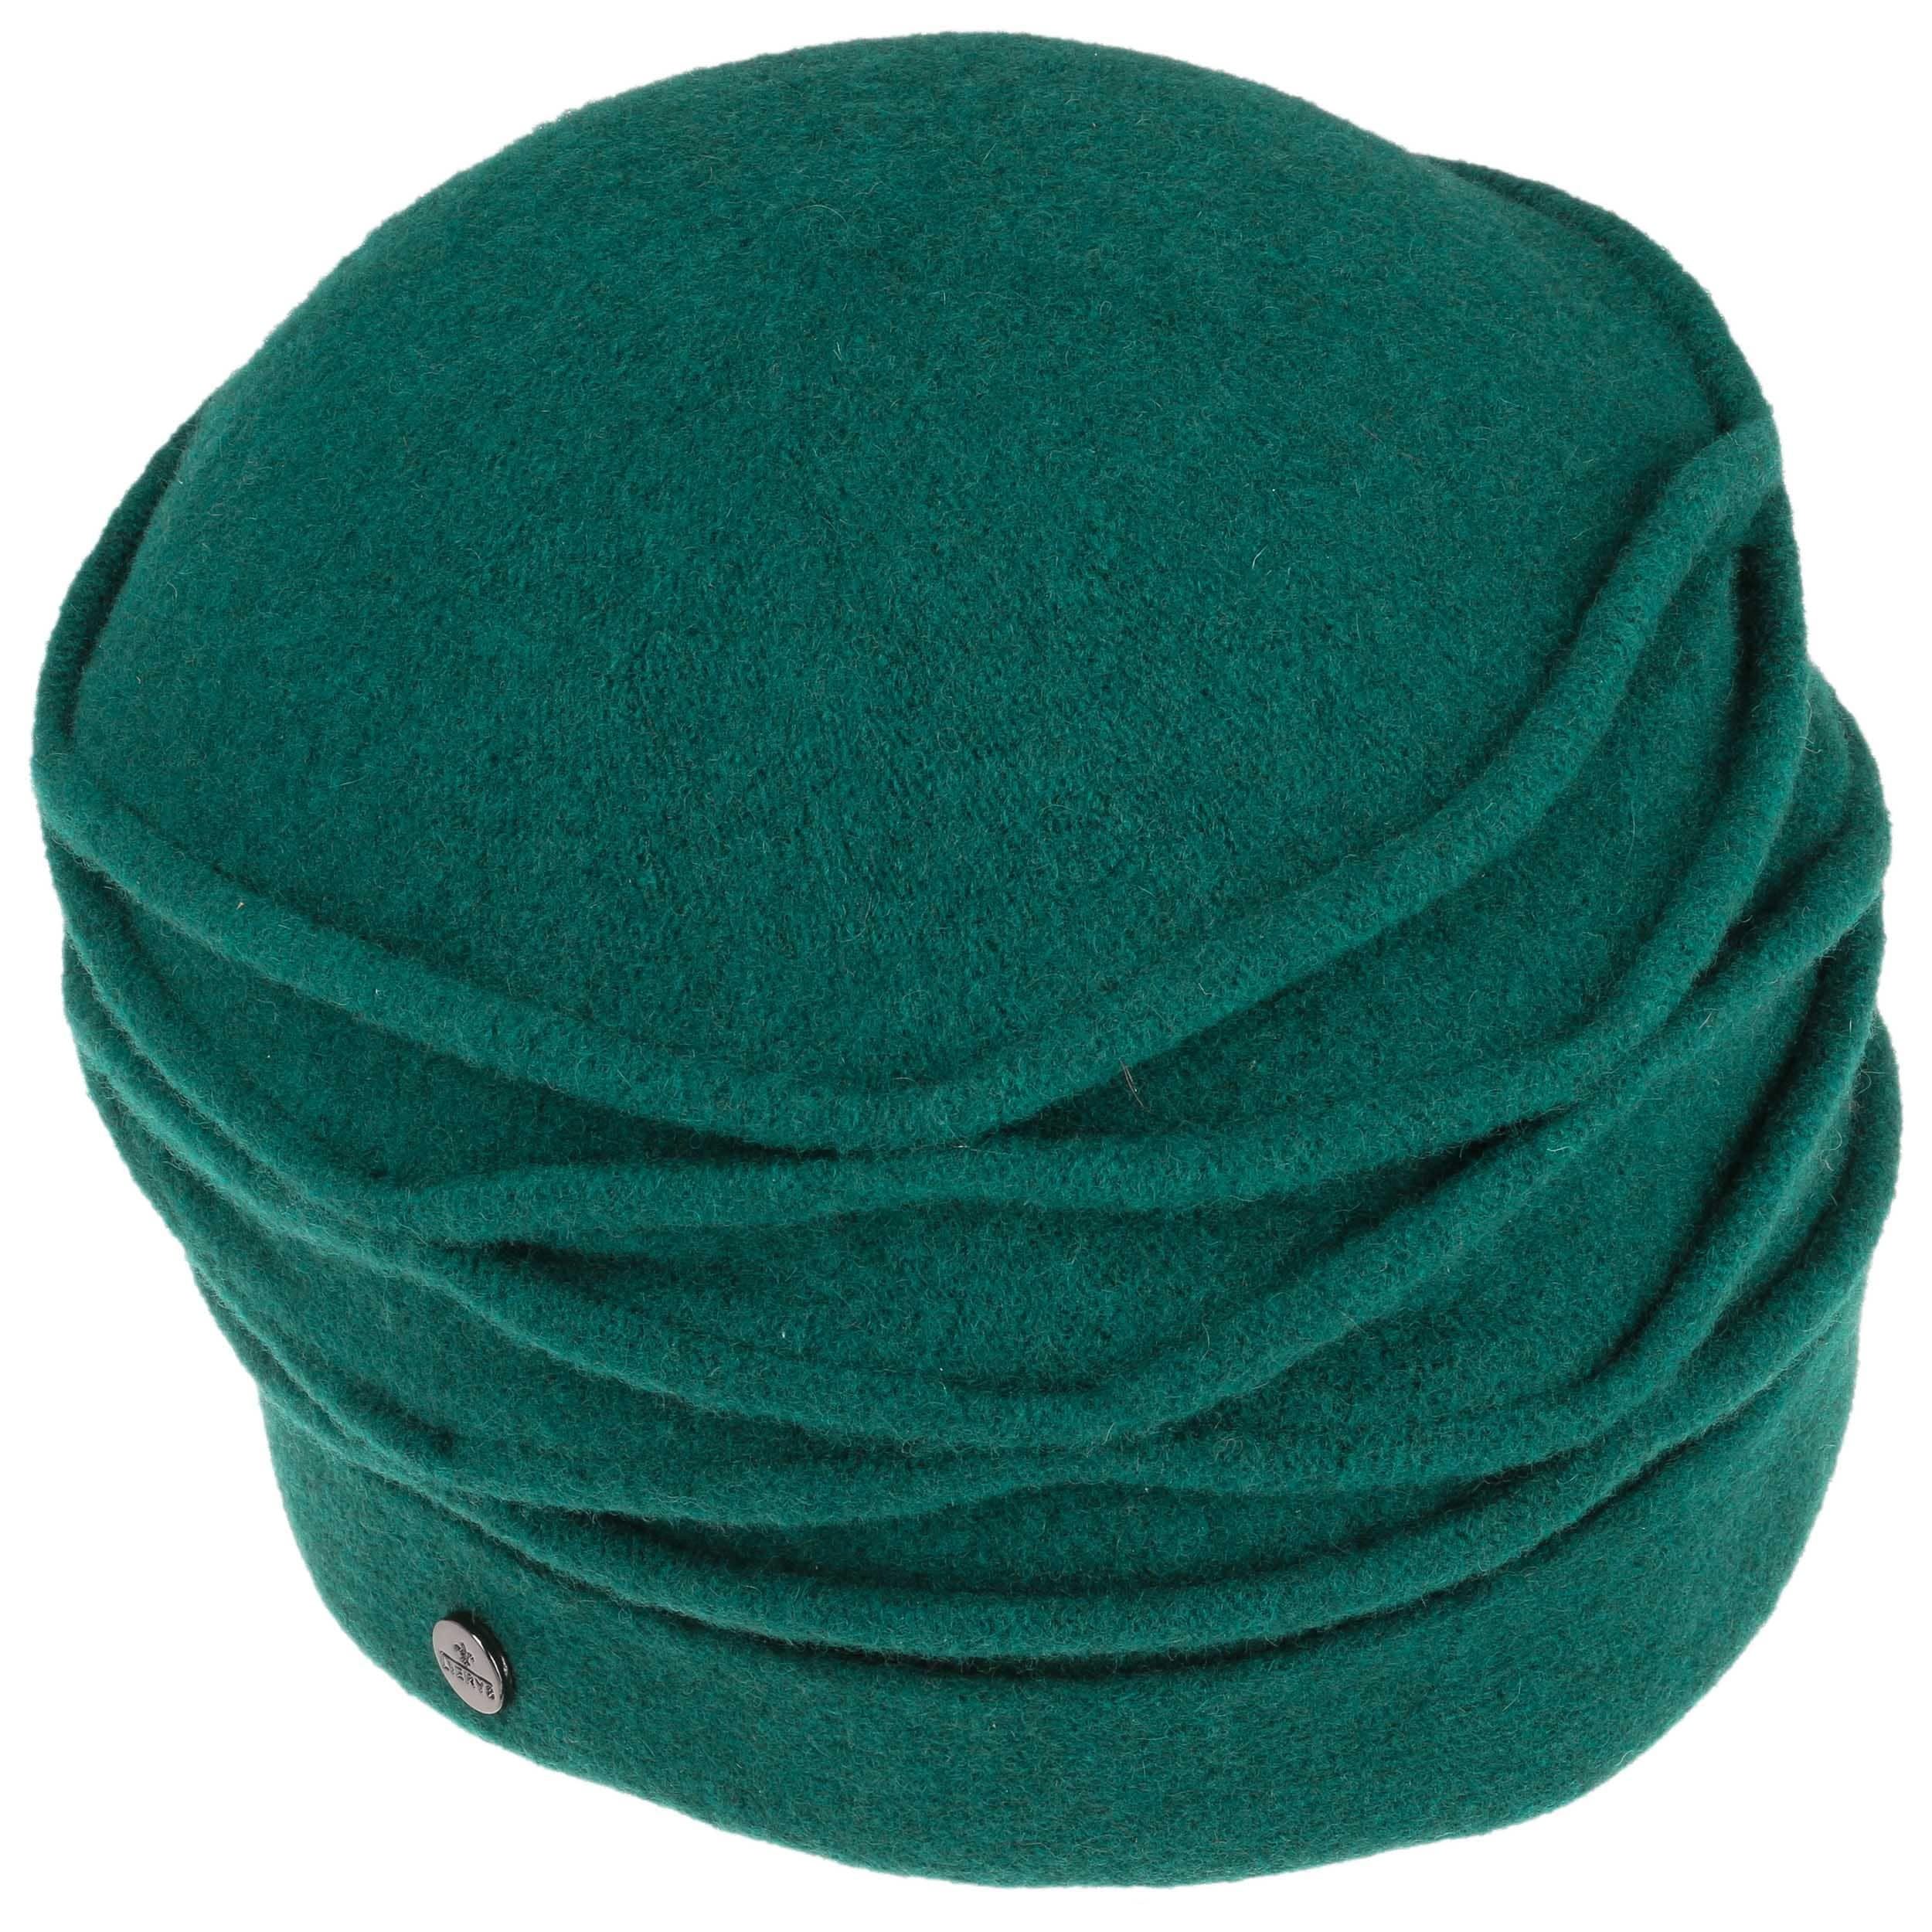 ... Taleta Milled Wool Hat with Pipings by Lierys - petrol blue 1 ... 7381a419a02